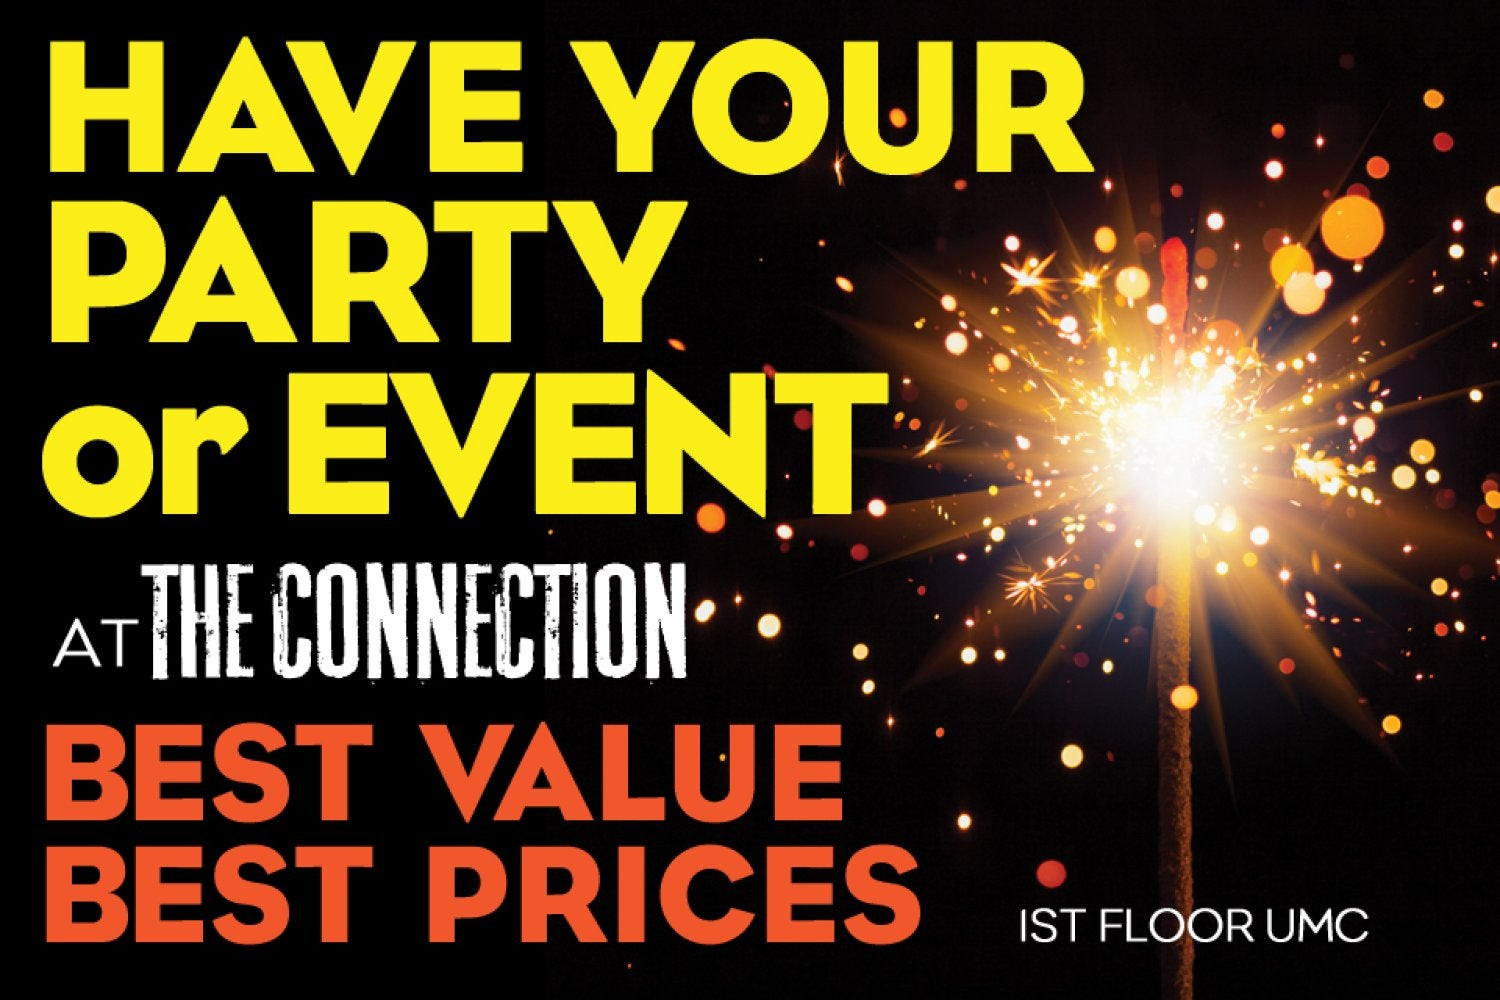 Have your party or event at The Connection. Best value. Best prices. First floor UMC.